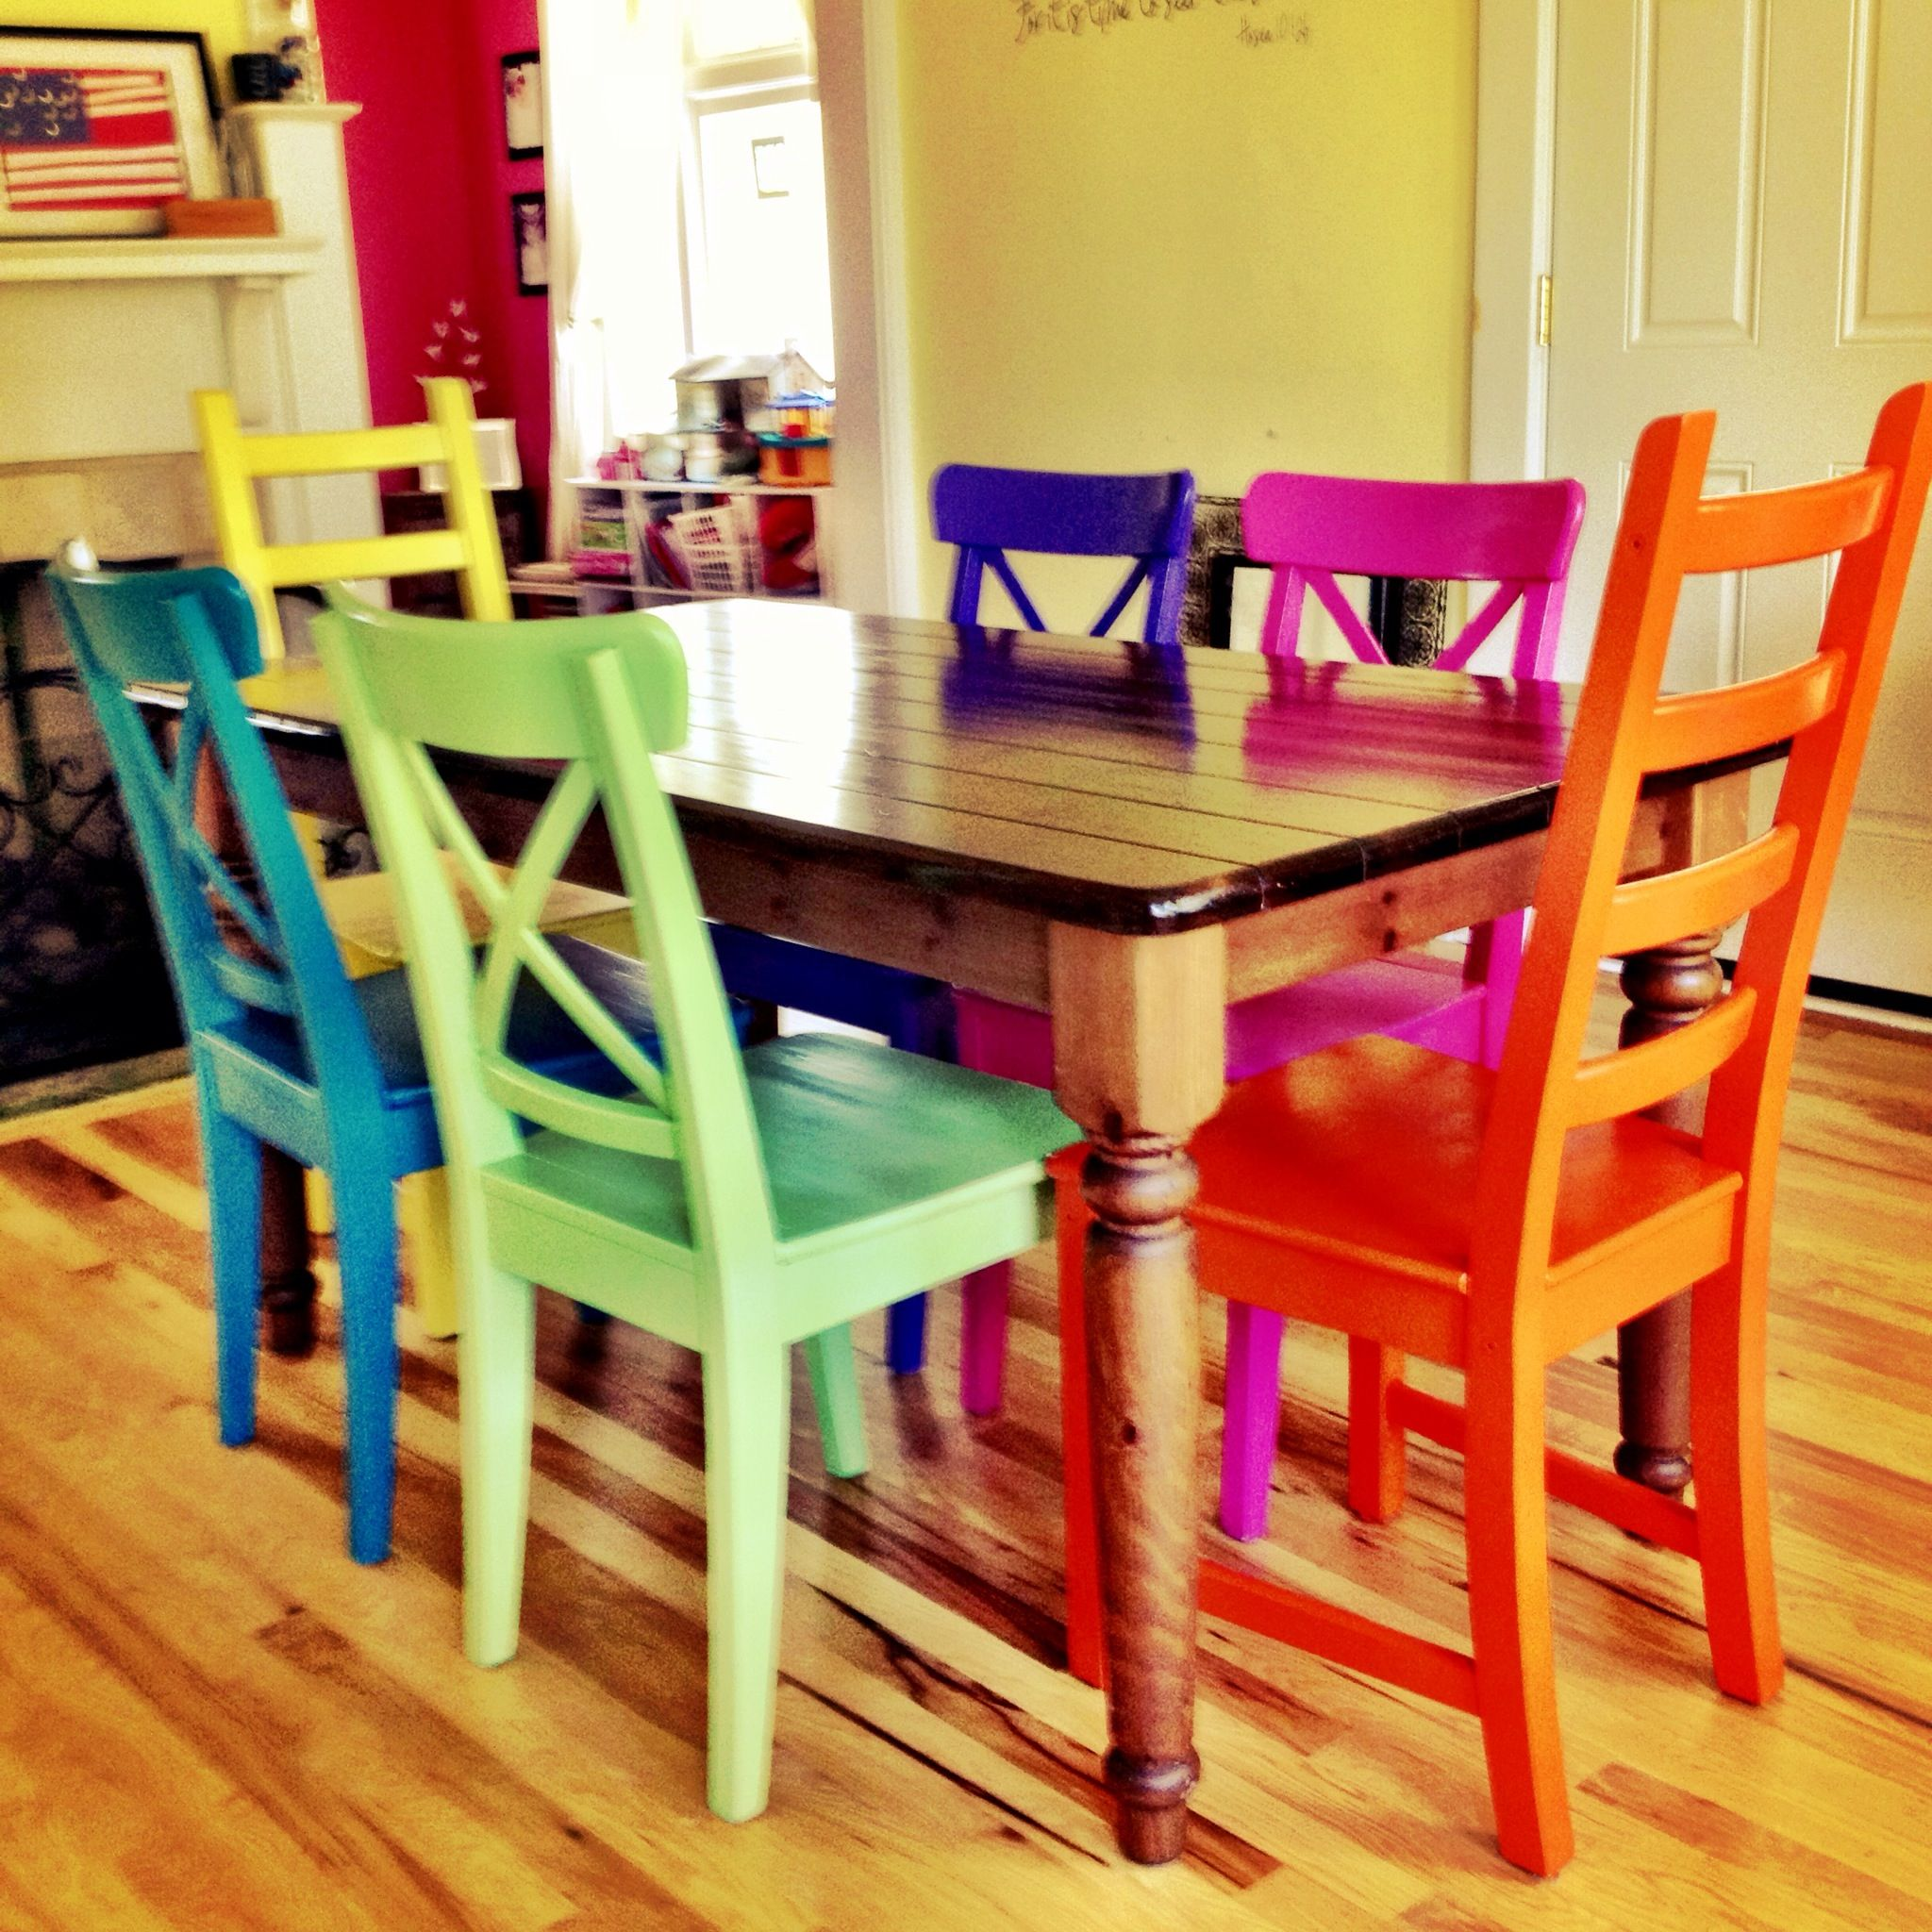 painted kitchen tables Rustoleum spray painted chairs these remind me of all the colored benches at the